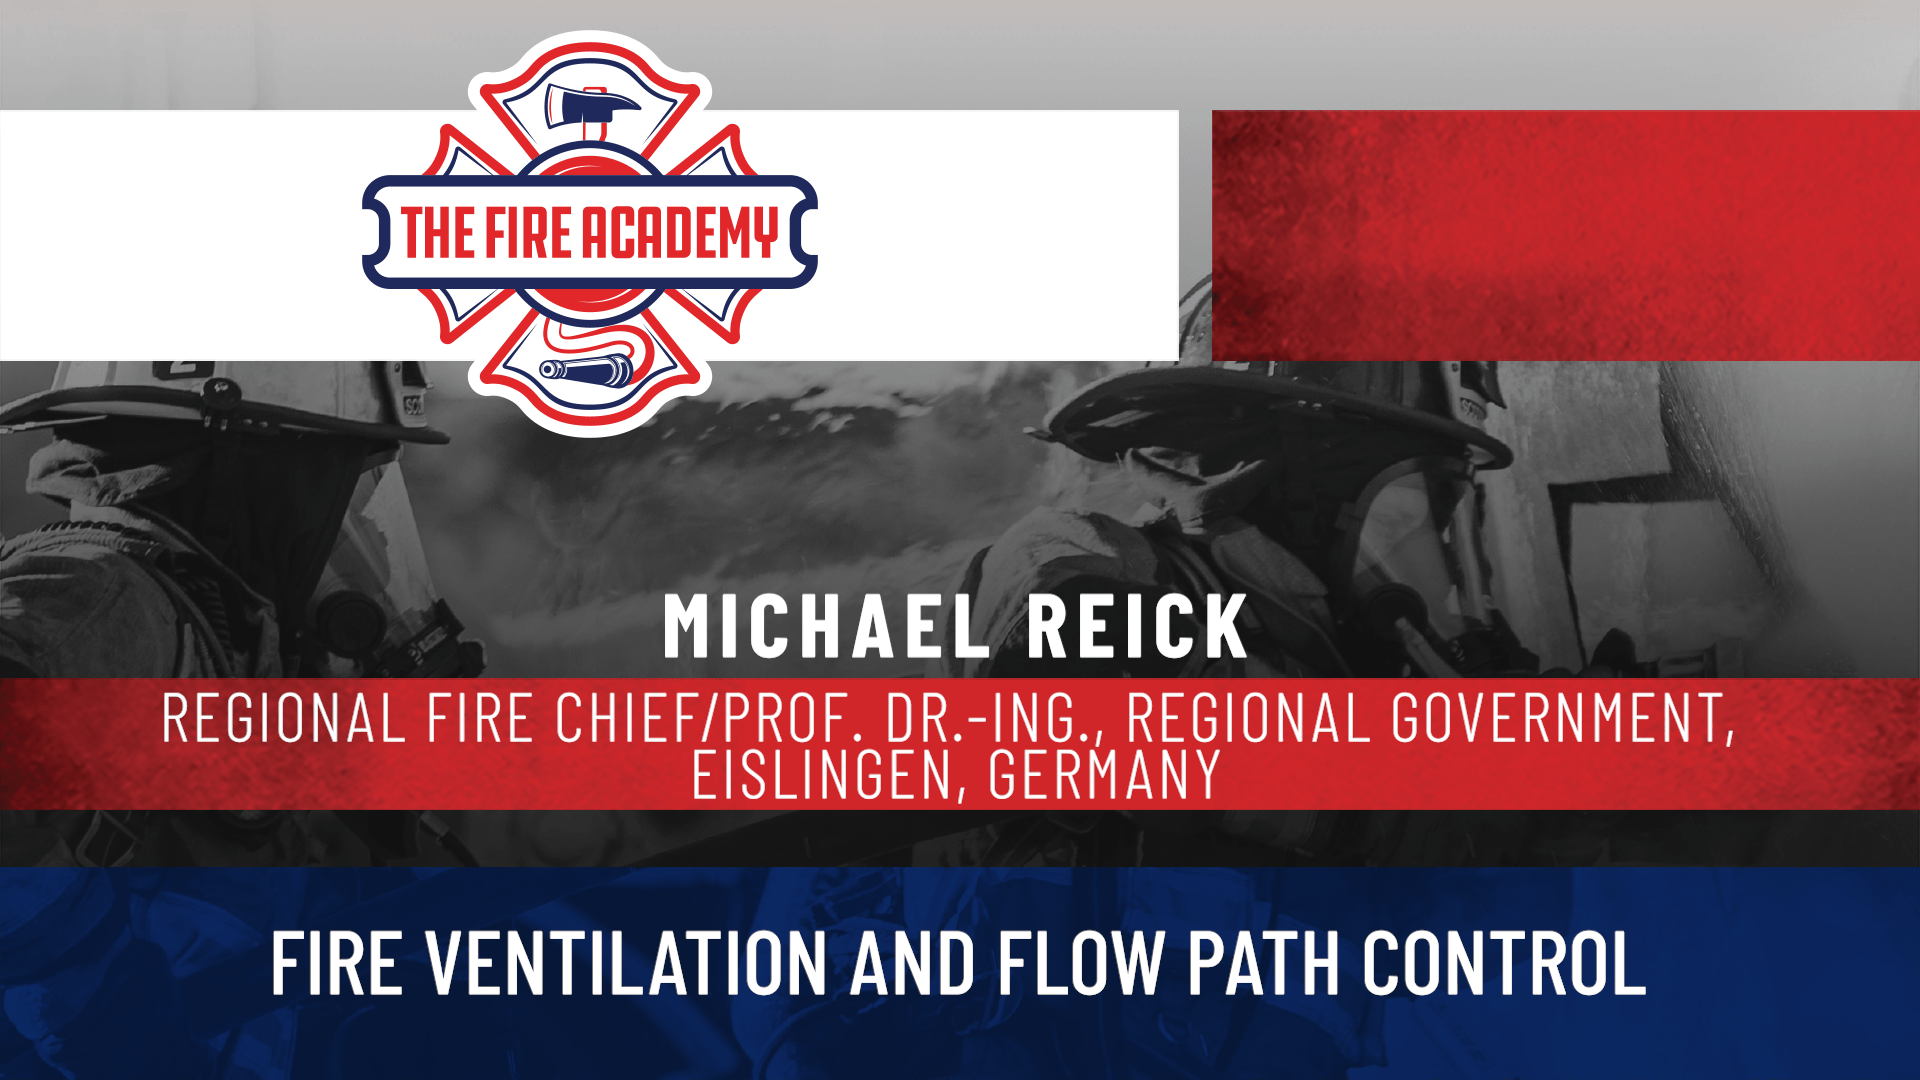 Fire Ventilation and Flow Path Control